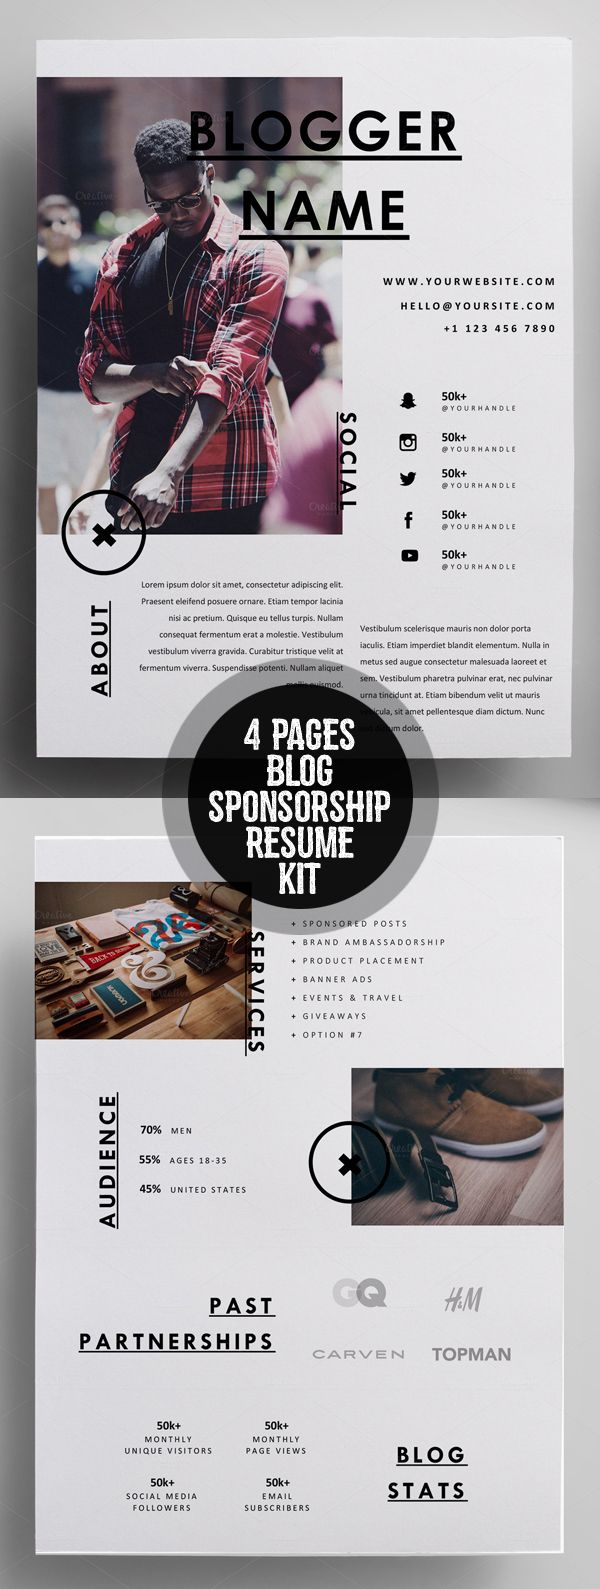 Creative 4 Pages Blog Sponsorship Kit Resume Template. Great, clean resume design! For more resume design inspirations click here: www.pinterest.com/sheppardaaron/-design-resumes/ Creative Resume Design, Resume Style, Resume Design, Curriculum Vitae, CV, Resume Template, Resumes, Resume Format